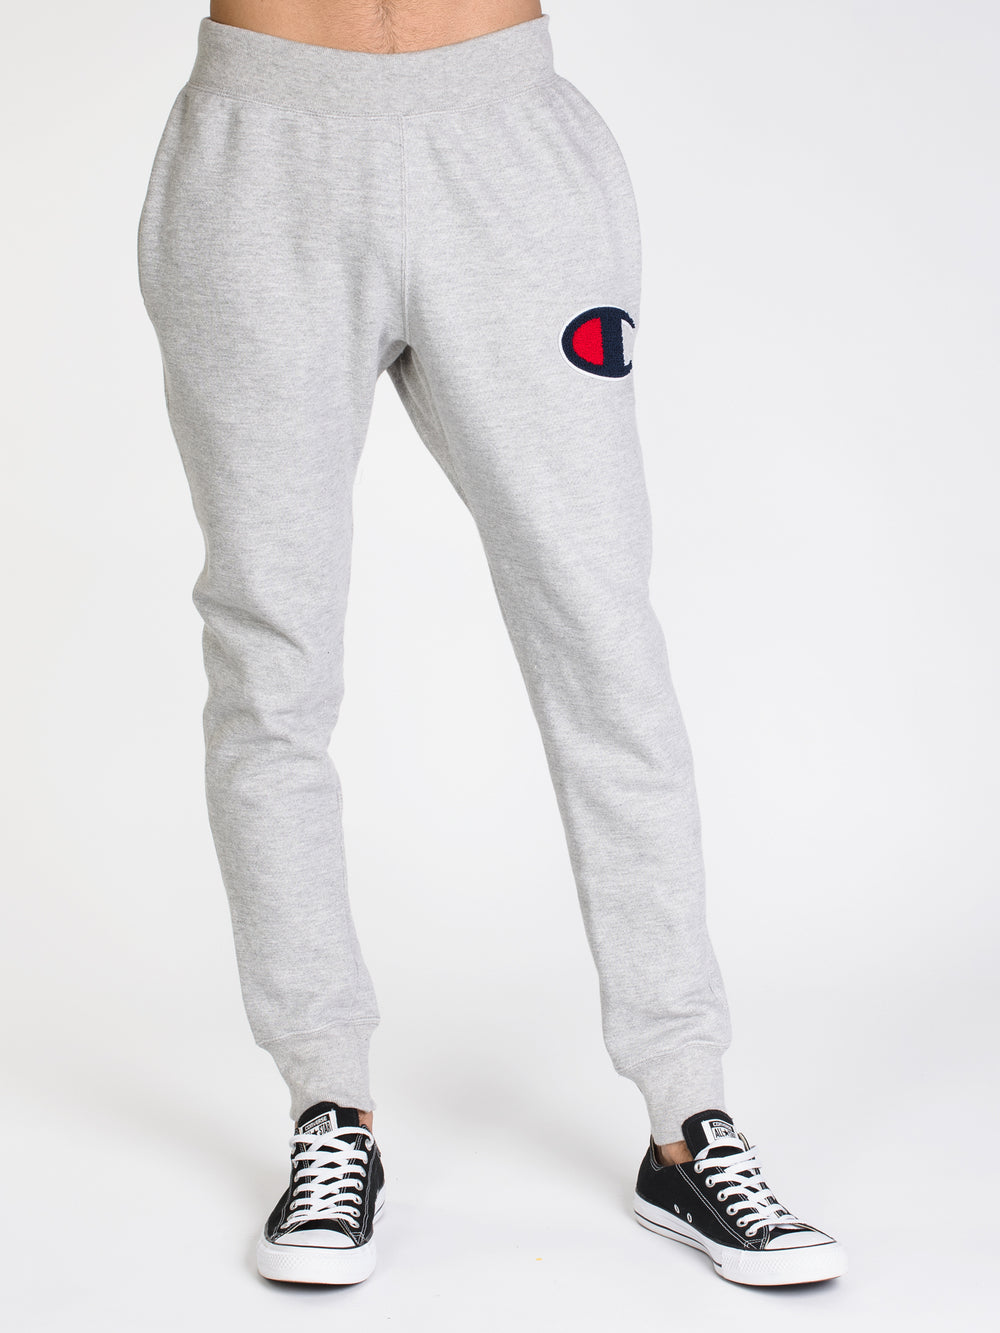 MENS REV WEAVE JOGGER PANT - GREY